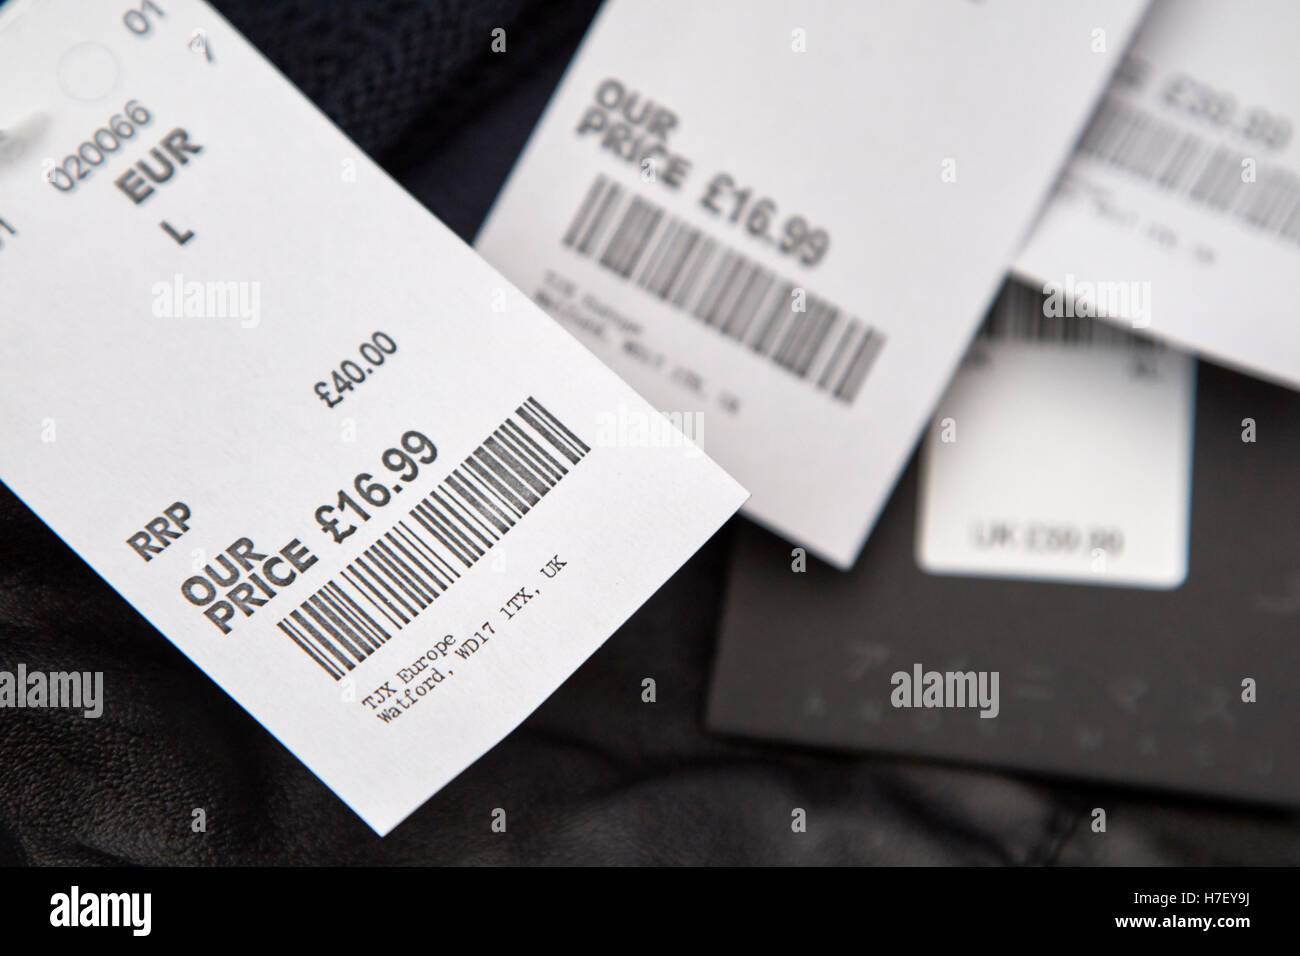 tkmax reduced price tags on mens clothing Stock Photo